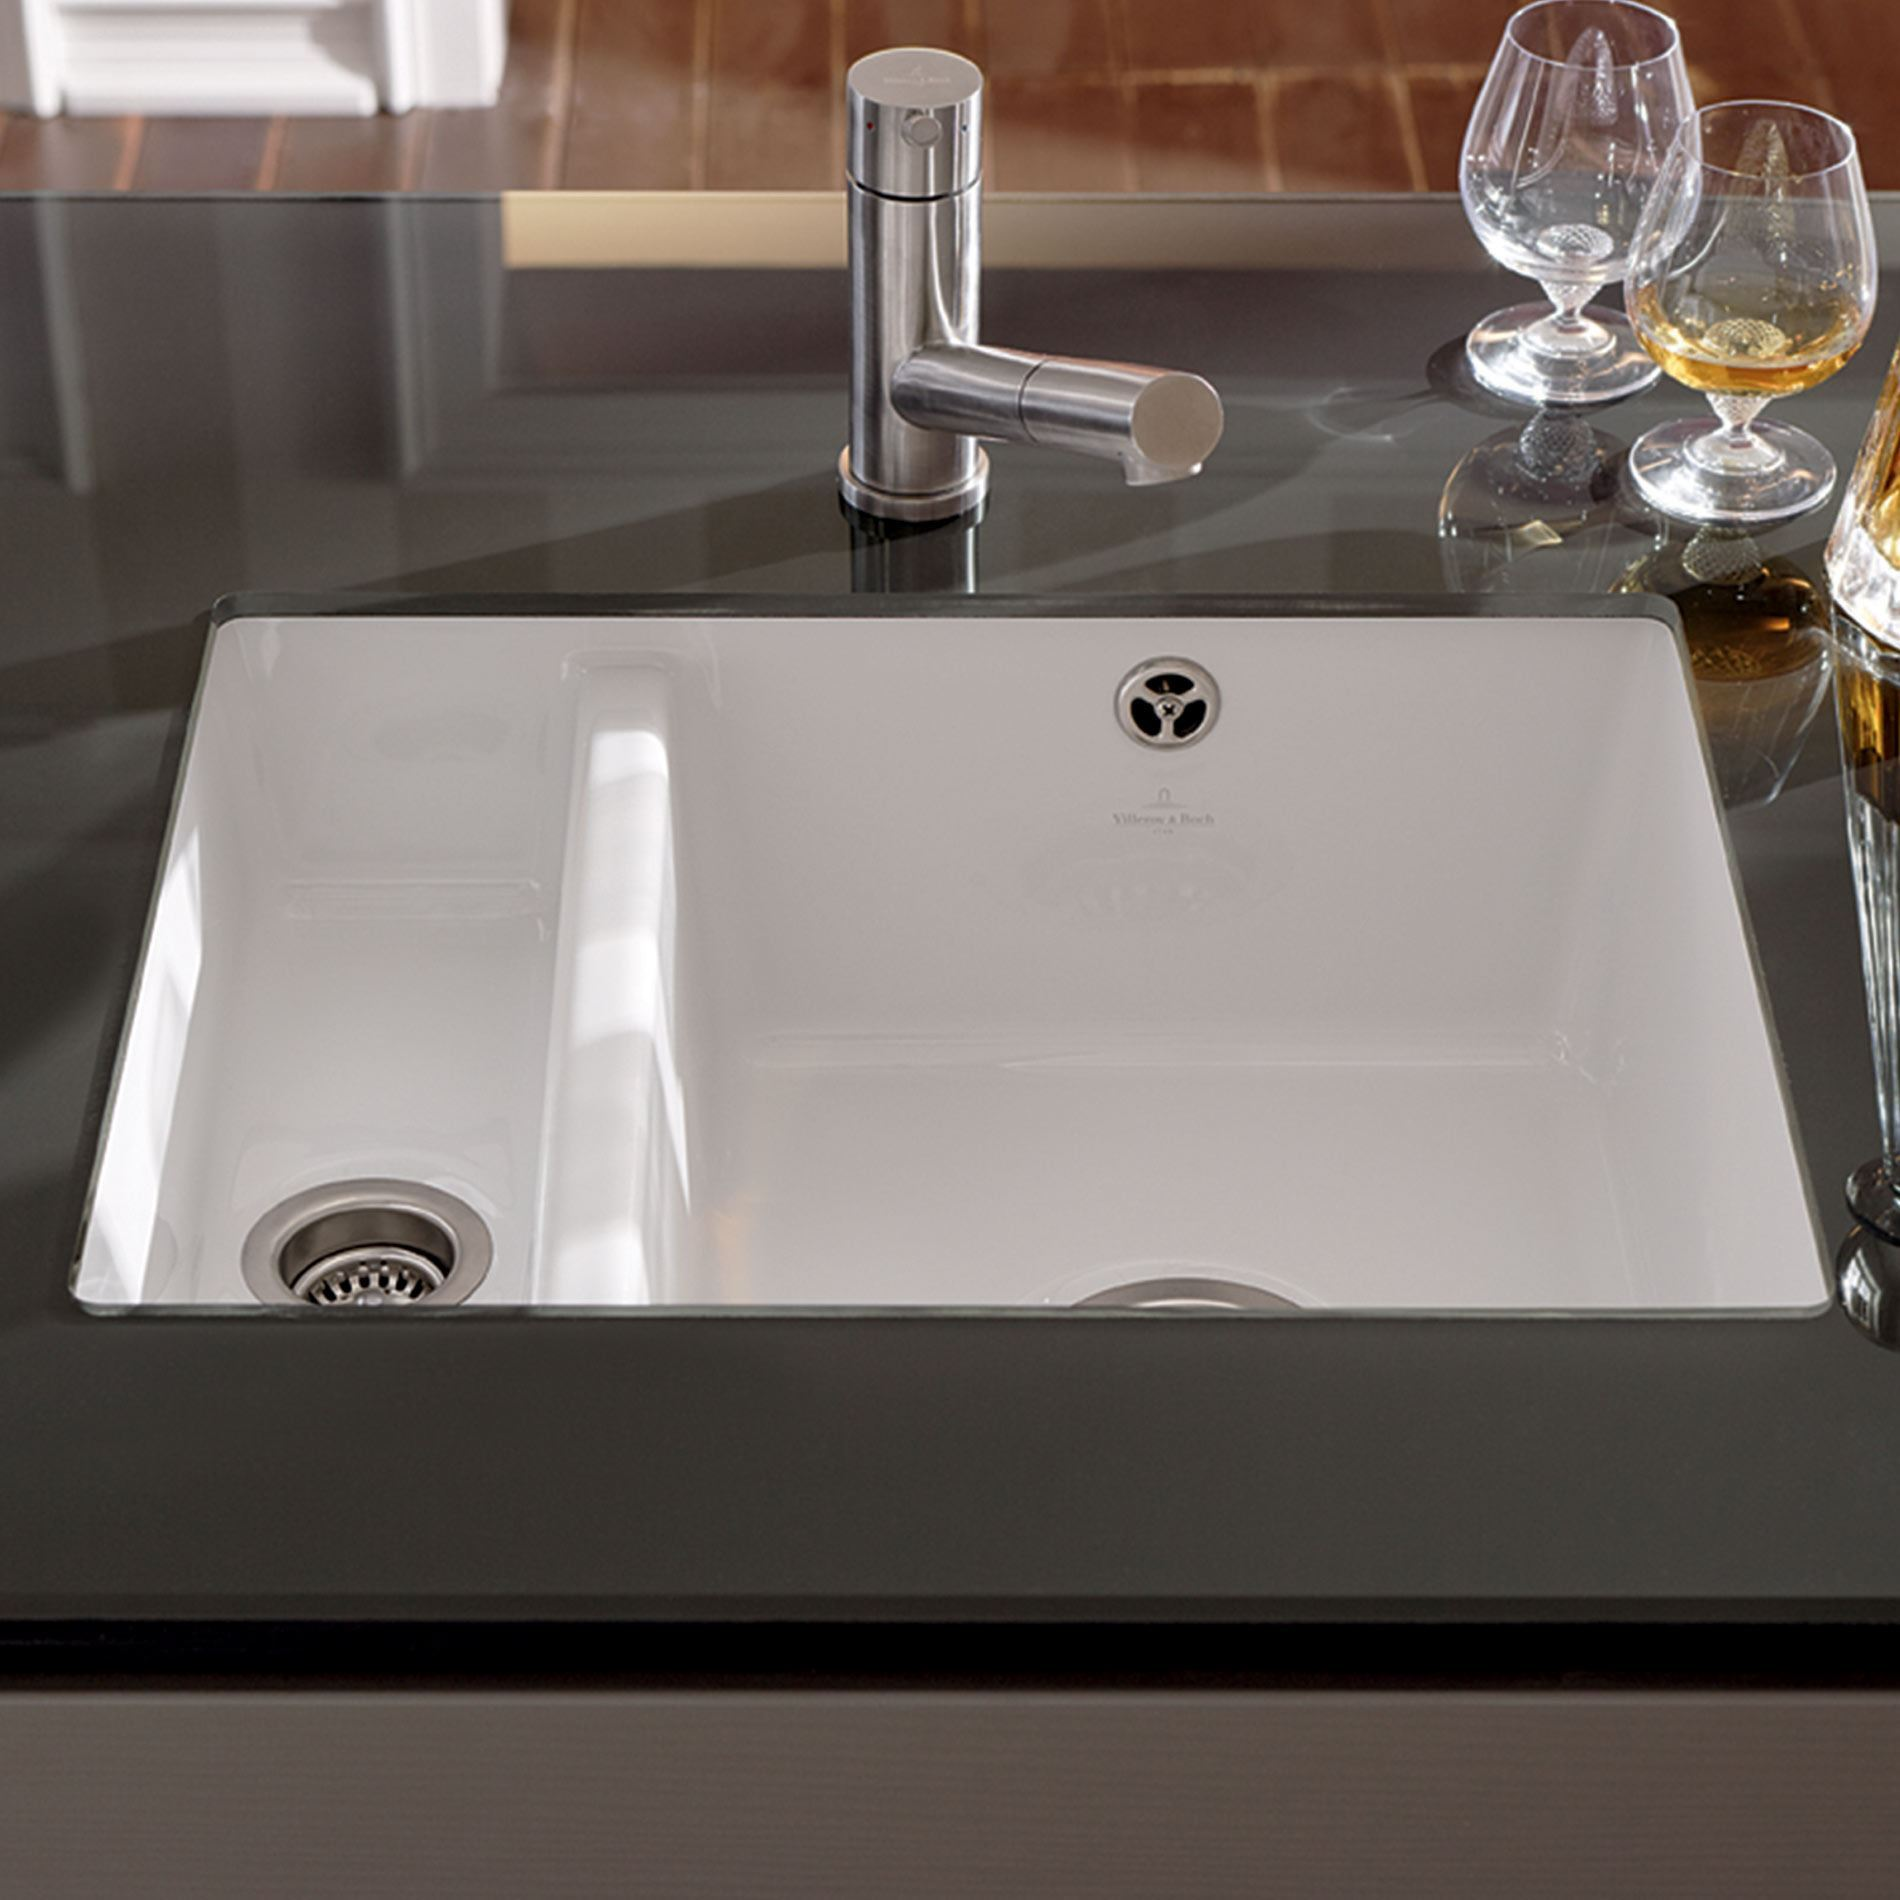 kitchen sinks taps villeroy boch subway 60xu. Black Bedroom Furniture Sets. Home Design Ideas